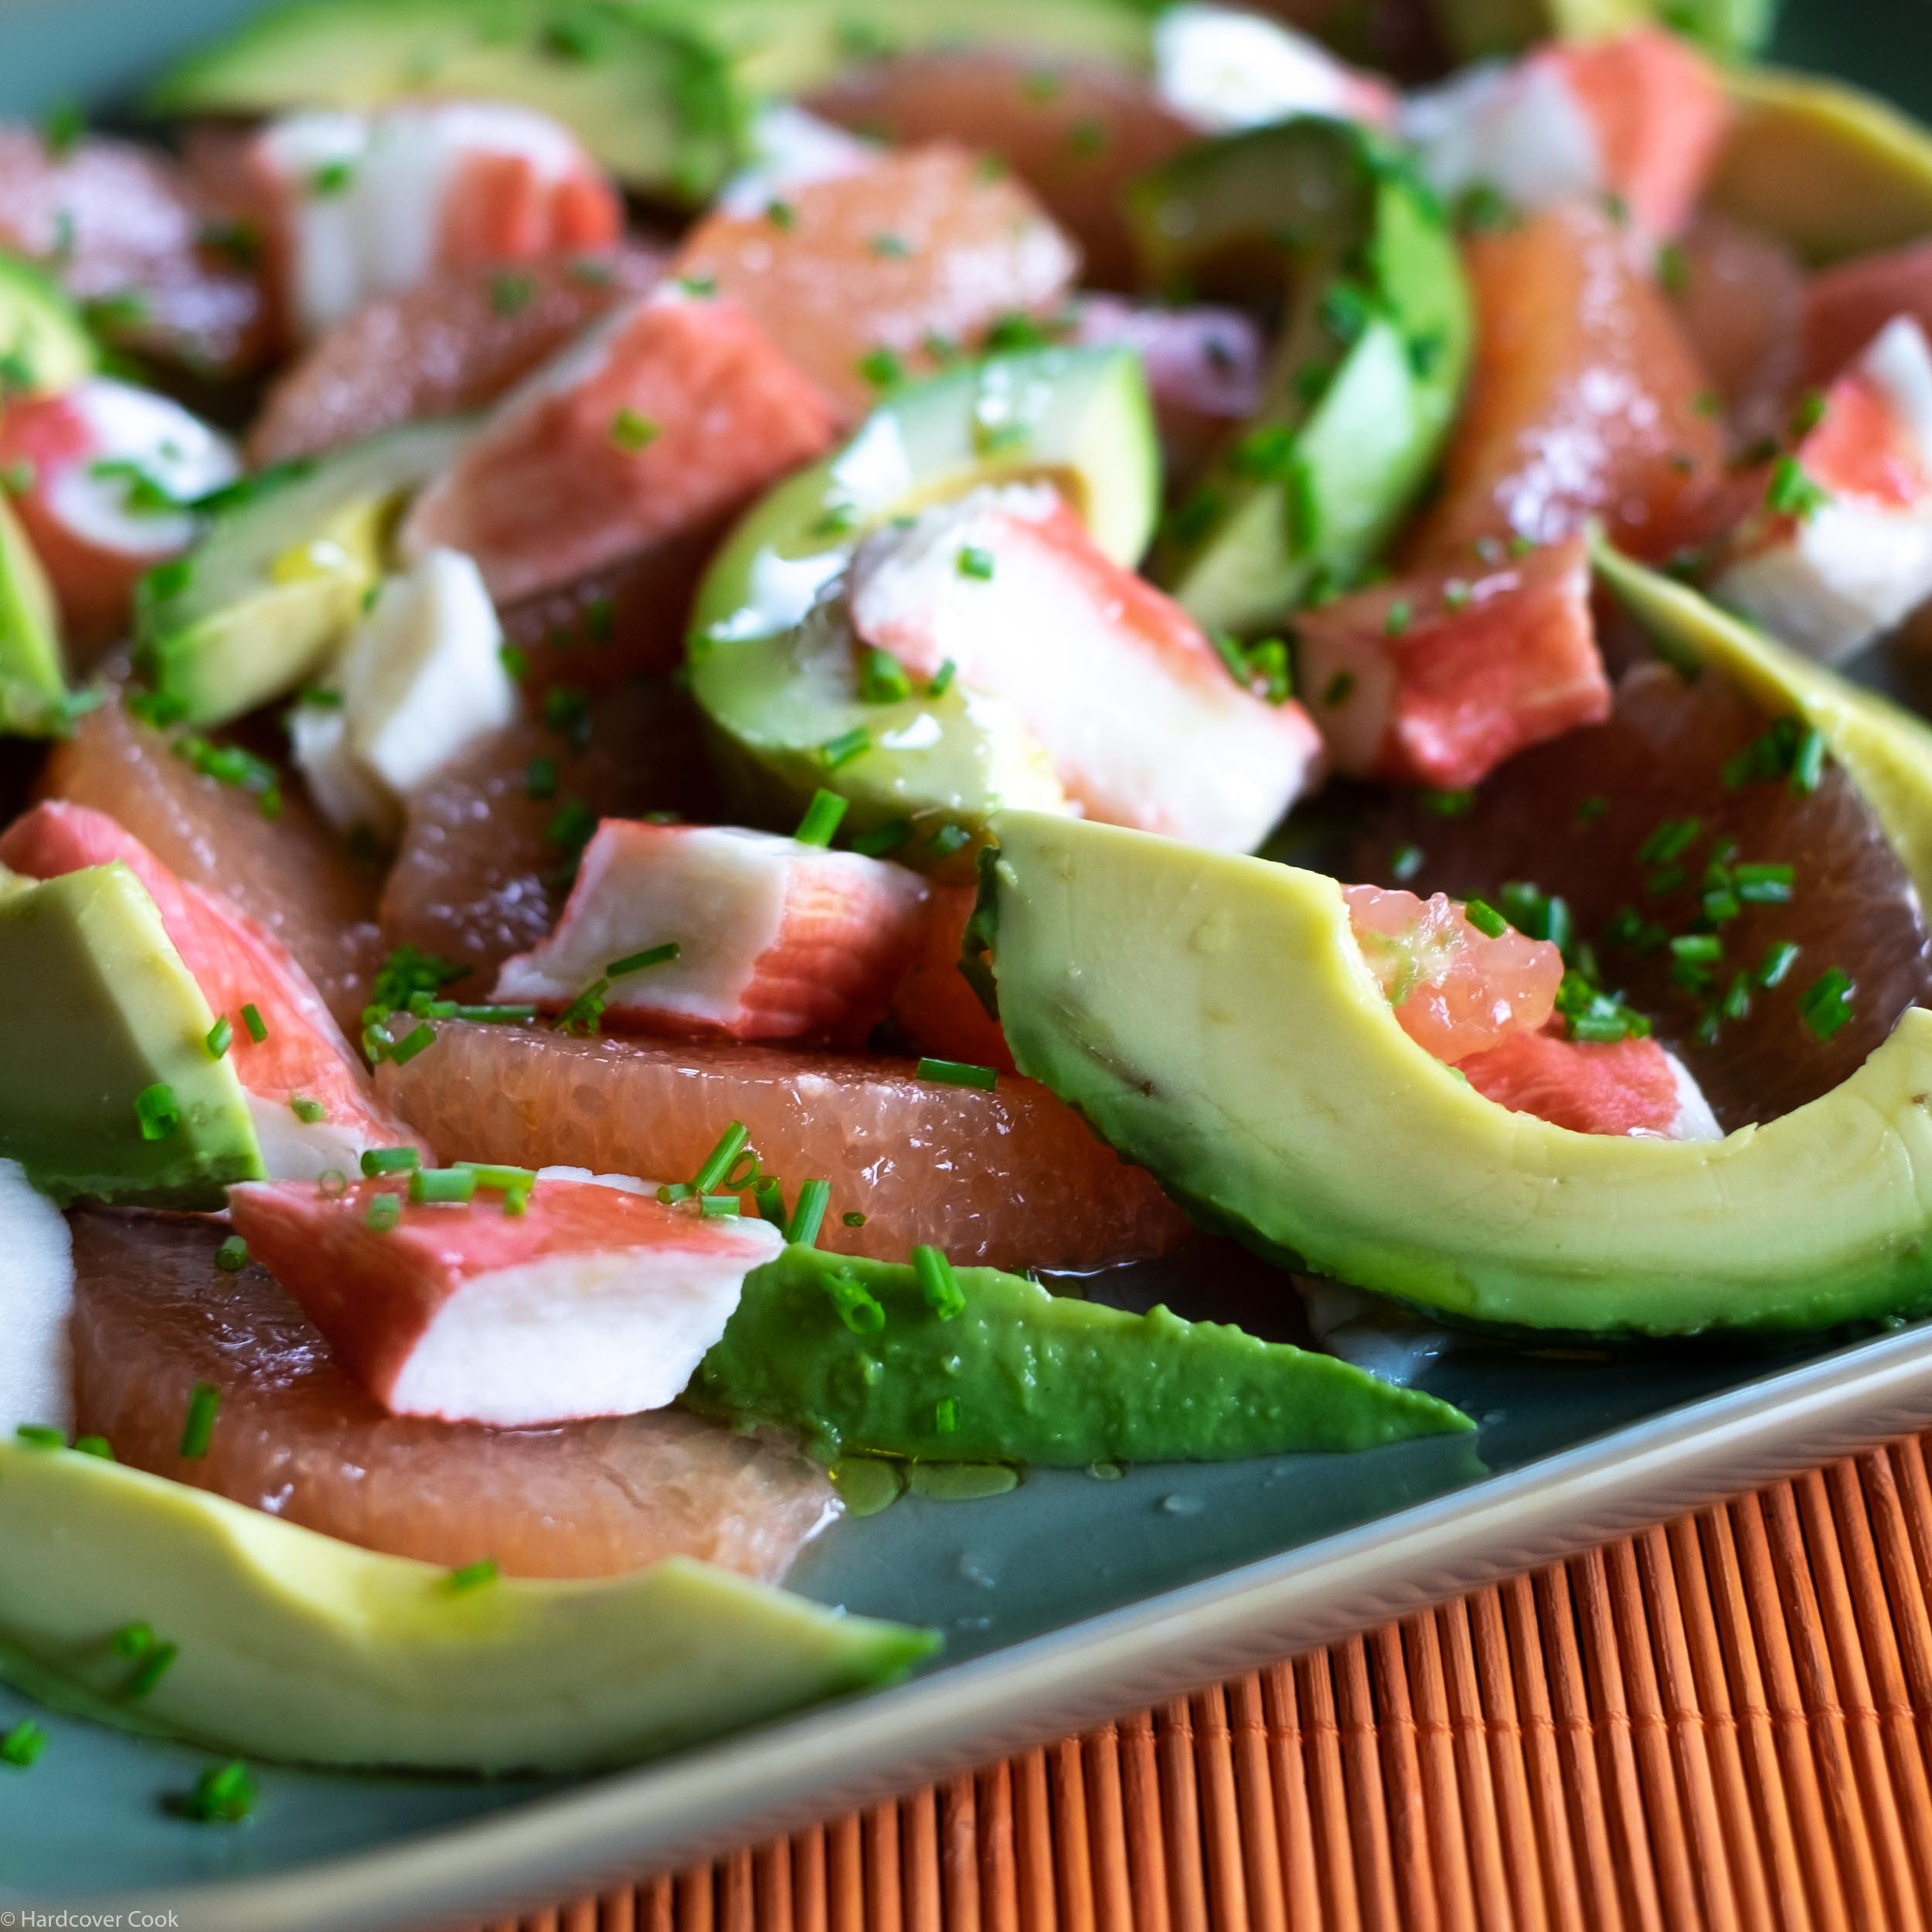 Krab, Avocado & Grapefruit Salad from Just Cook It!